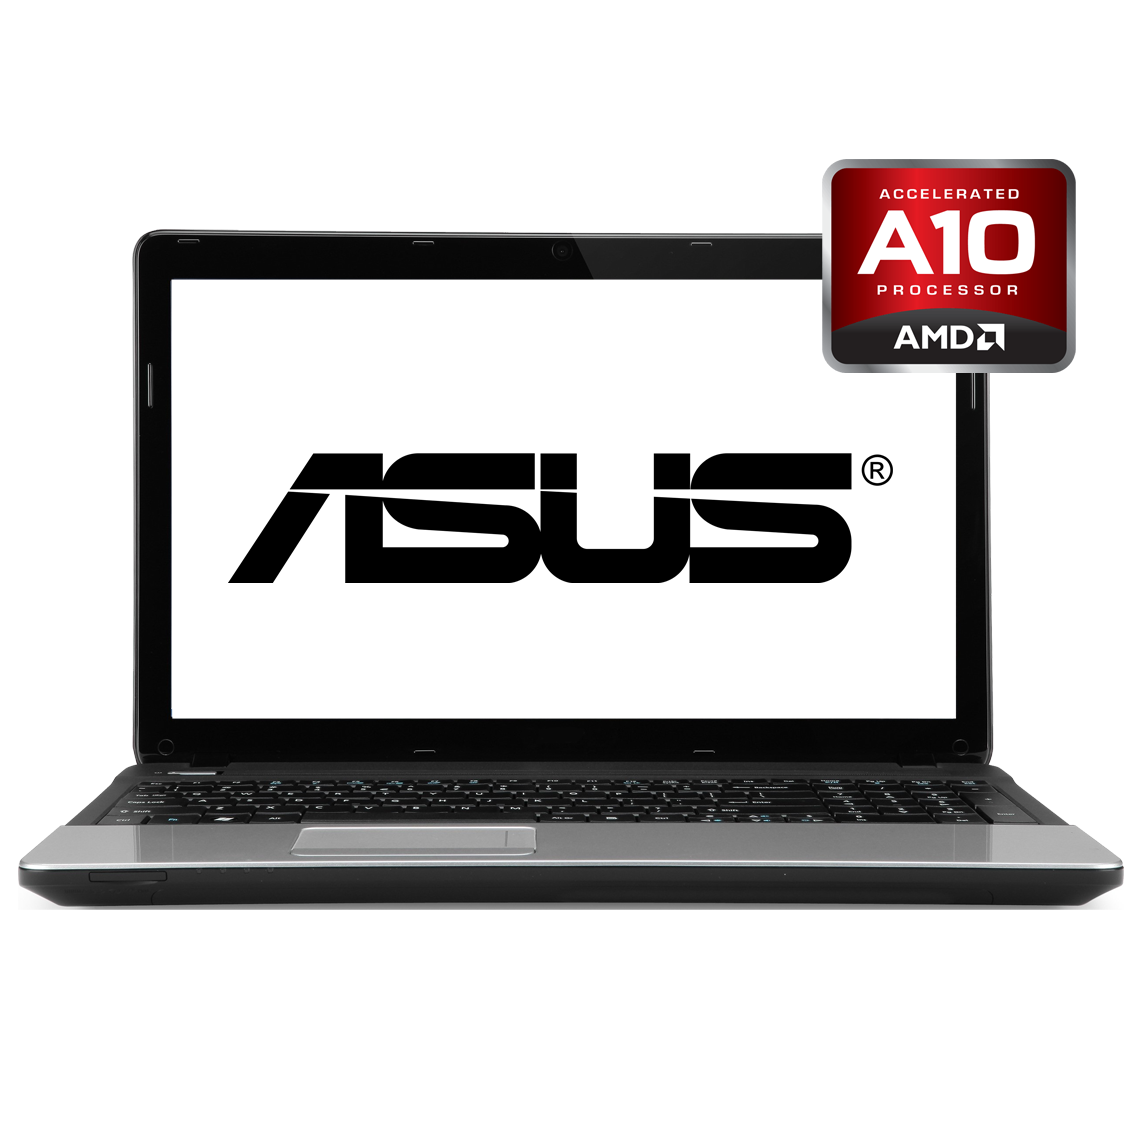 ASUS - 14 inch AMD A10